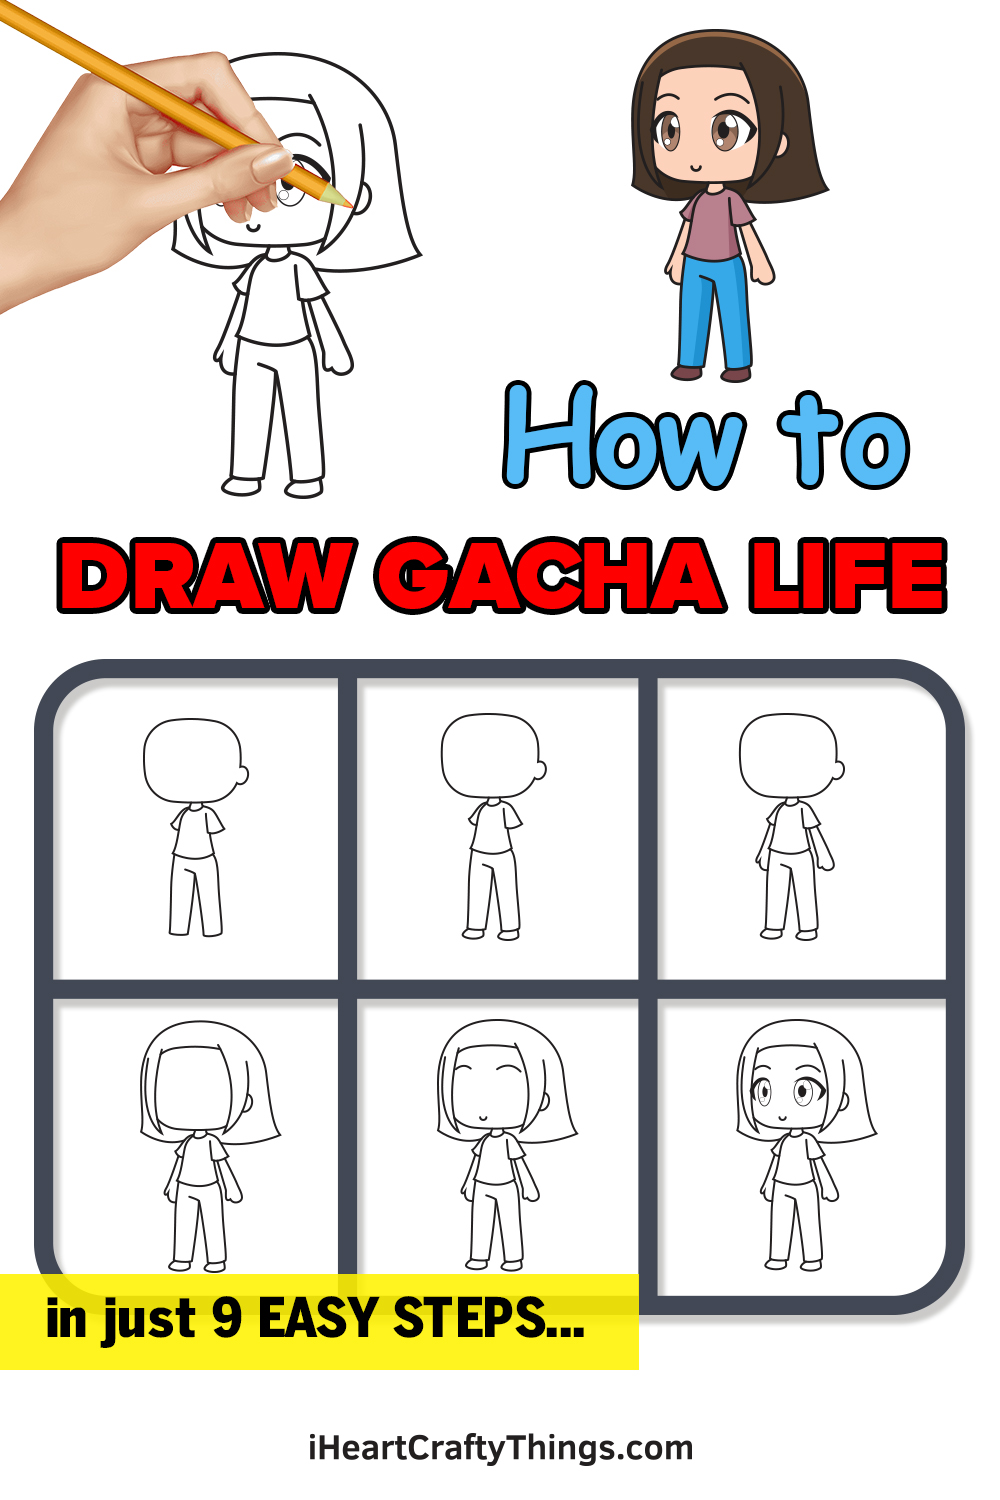 how to draw gacha life in 9 easy steps